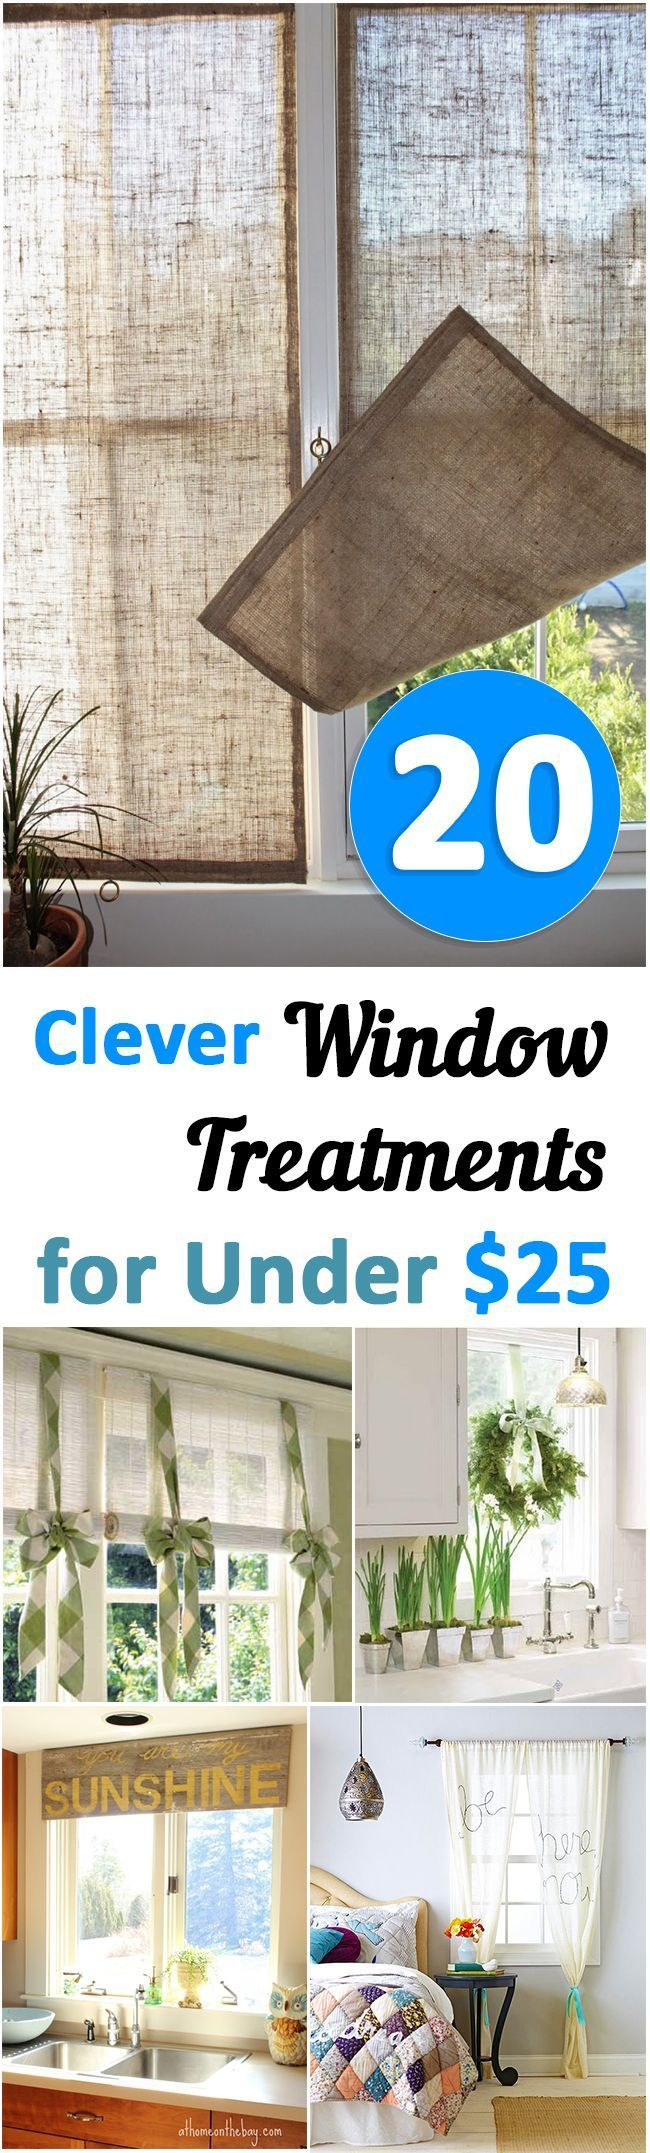 20 Clever Window Treatments for Under $25